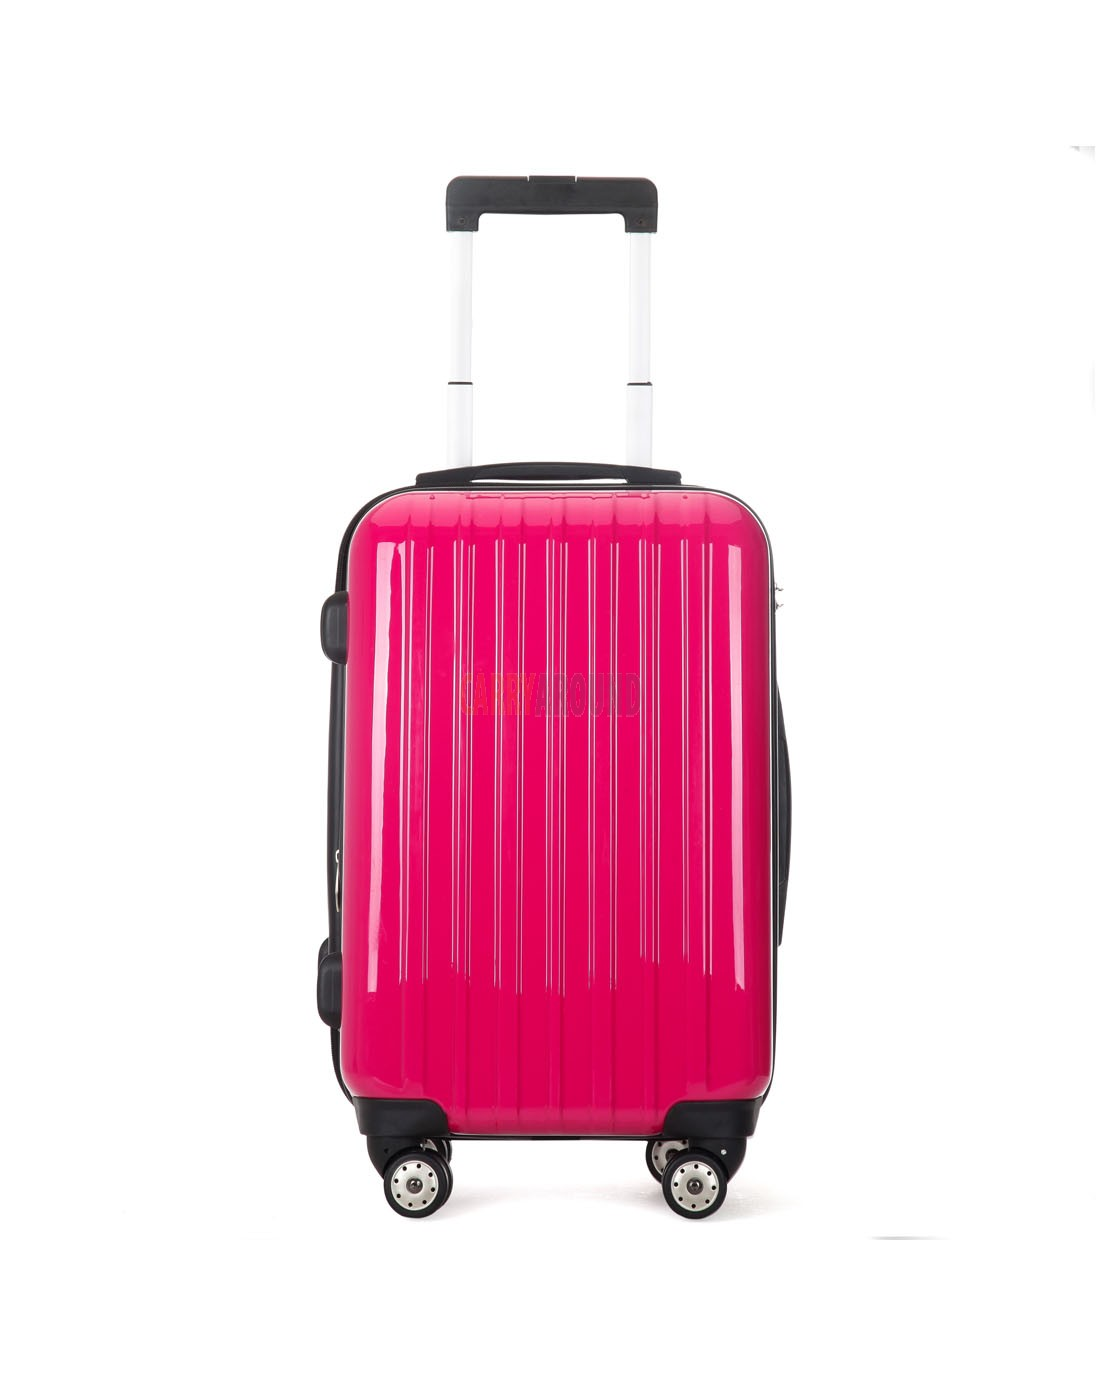 """AIRCROSS 2PC Set Luggage A55 Rose Hard Case Expandable Trolley Luggage - 20""""26"""""""